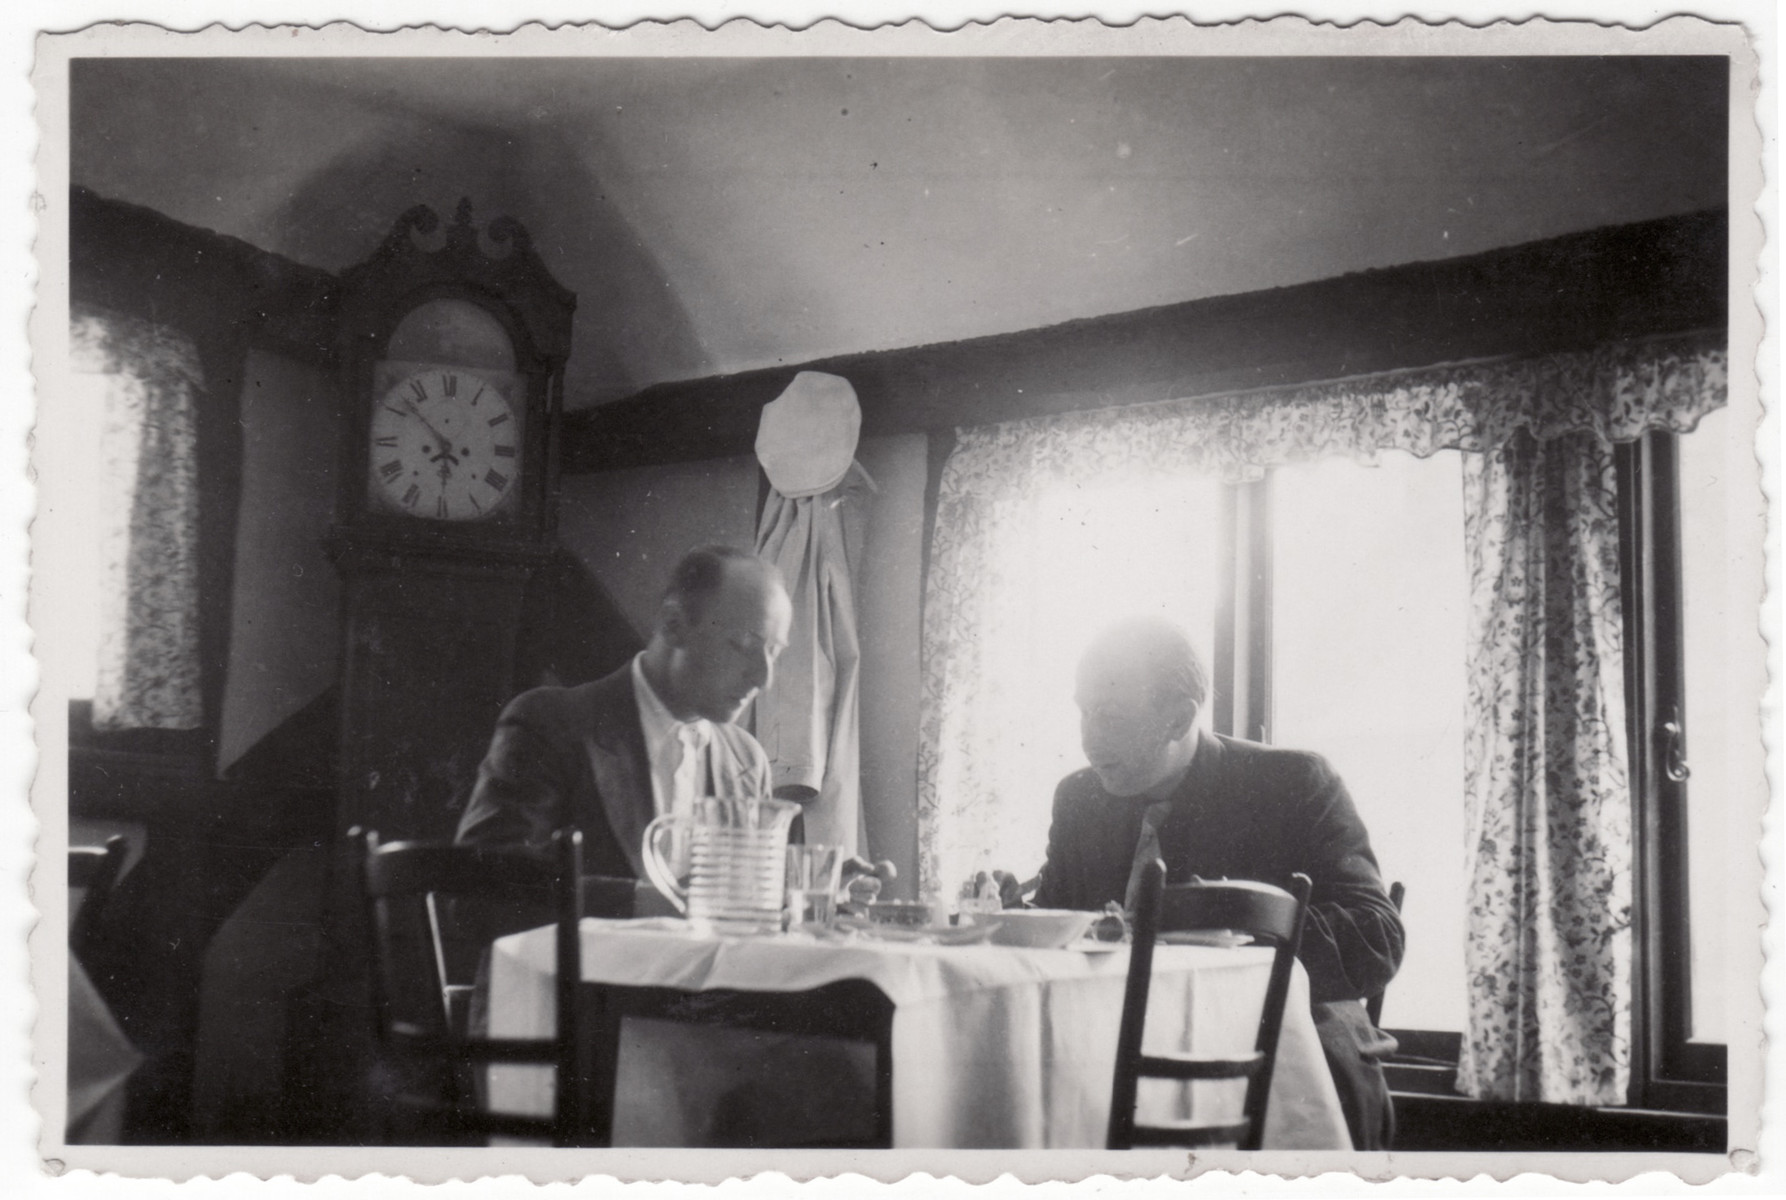 Siegfried Kulmann and a friend enjoy a meal while on a day trip to Ramsgate.